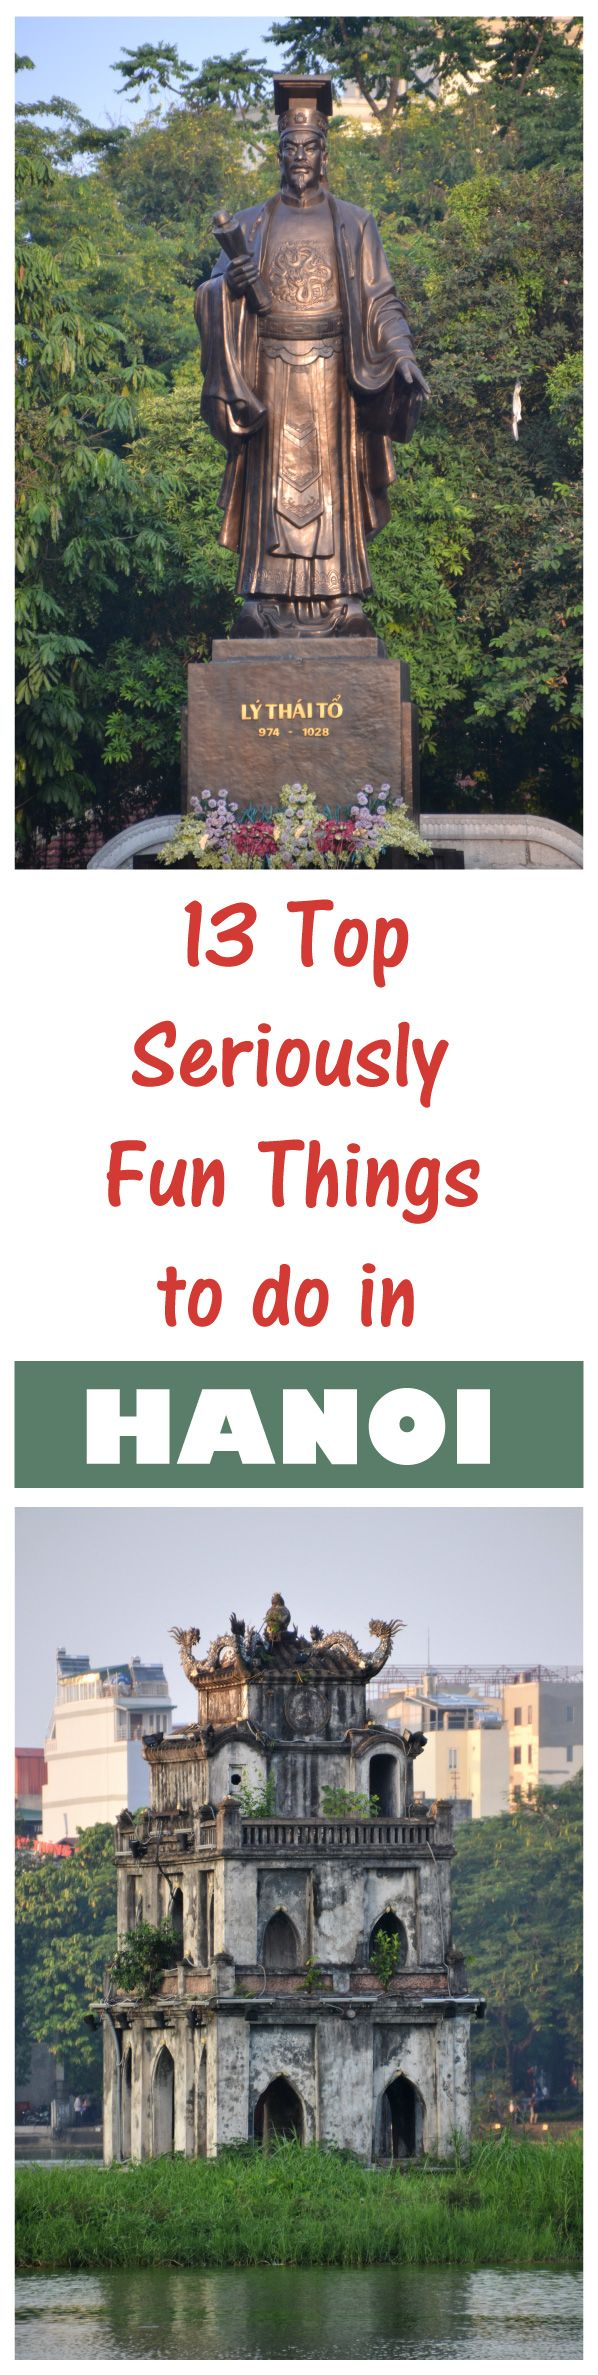 MEET HANOI - is the capital of Vietnam. Located in the nothern part of the country, is lovely, tourist friendly, developed and reasonably cheap... #travelling #travellingtips #travelmore #travelblog #travellersnotebook #travel #vietnam